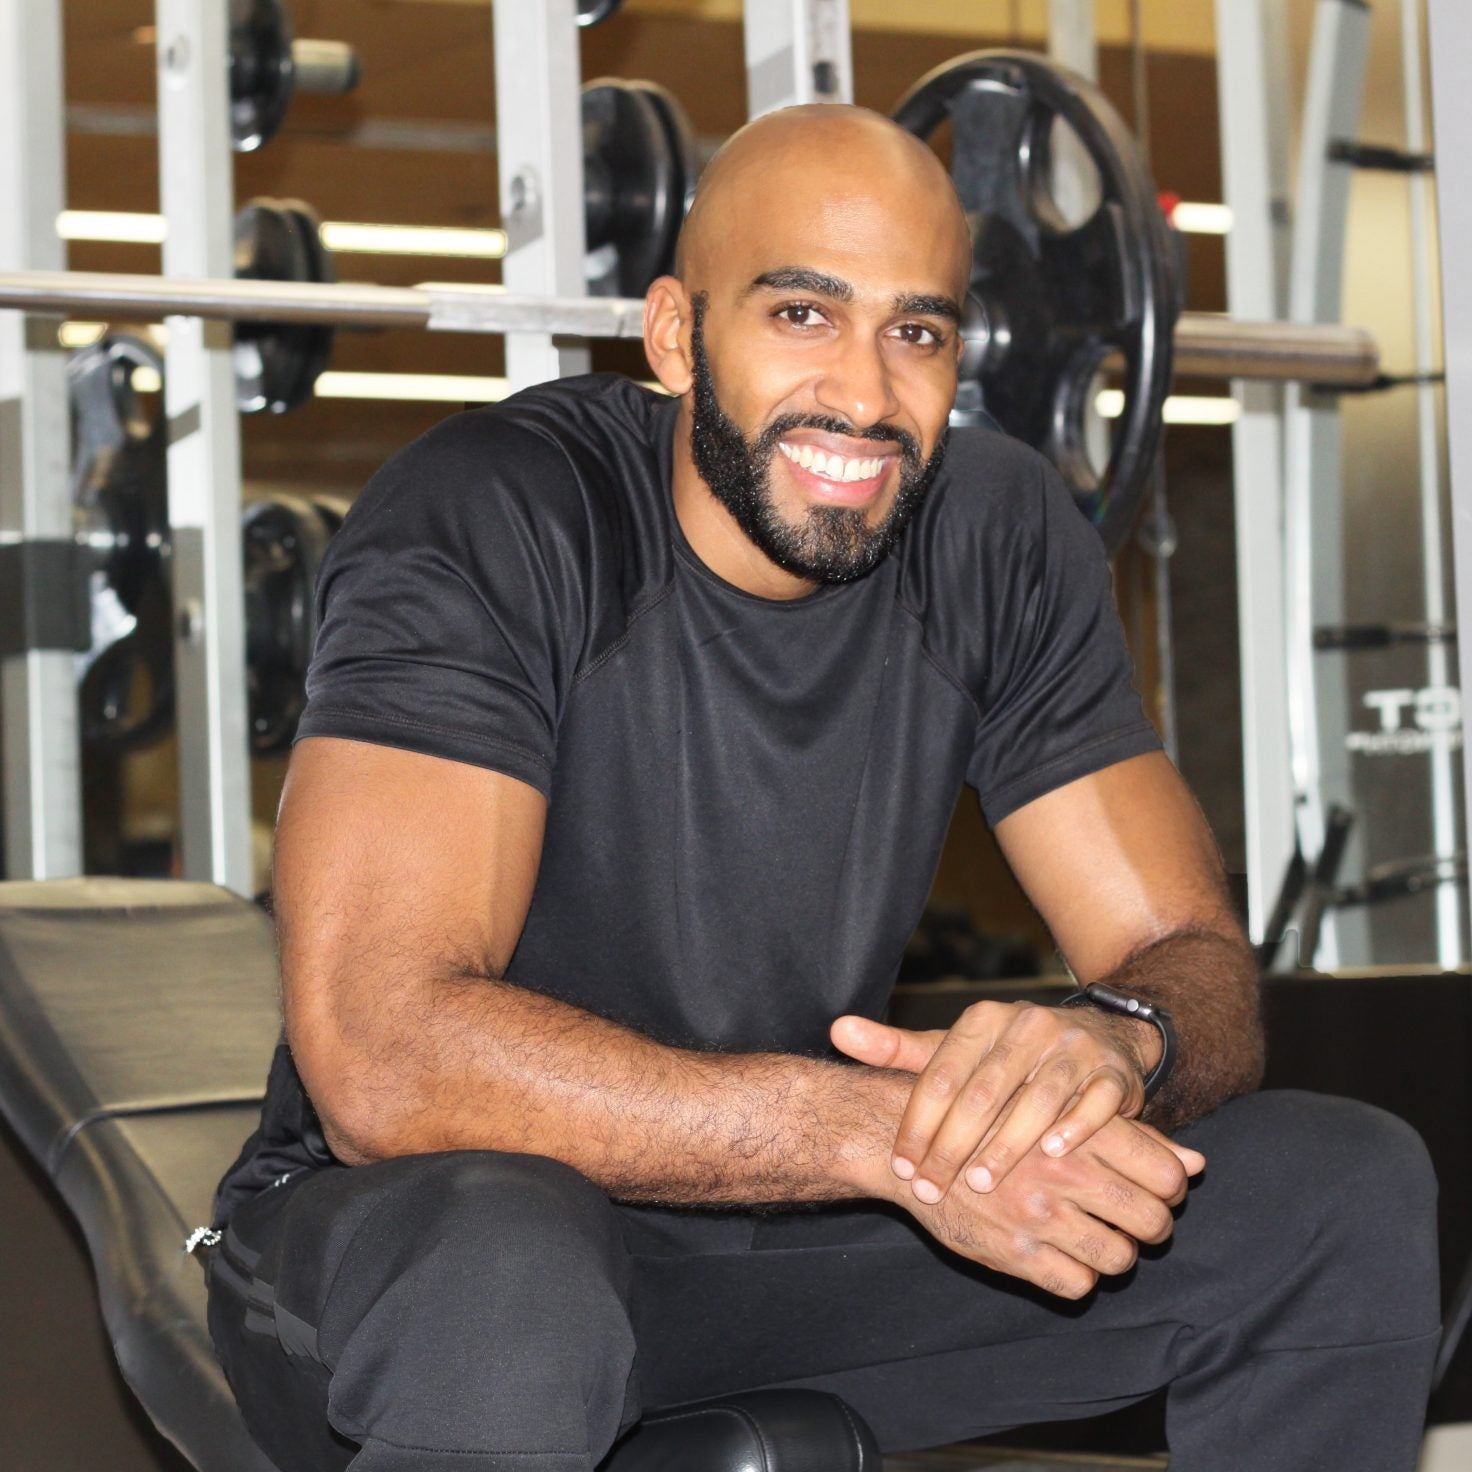 A Personal Trainer Should Not Be A Luxury: A Conversation With Barrington Bennett, Jr.